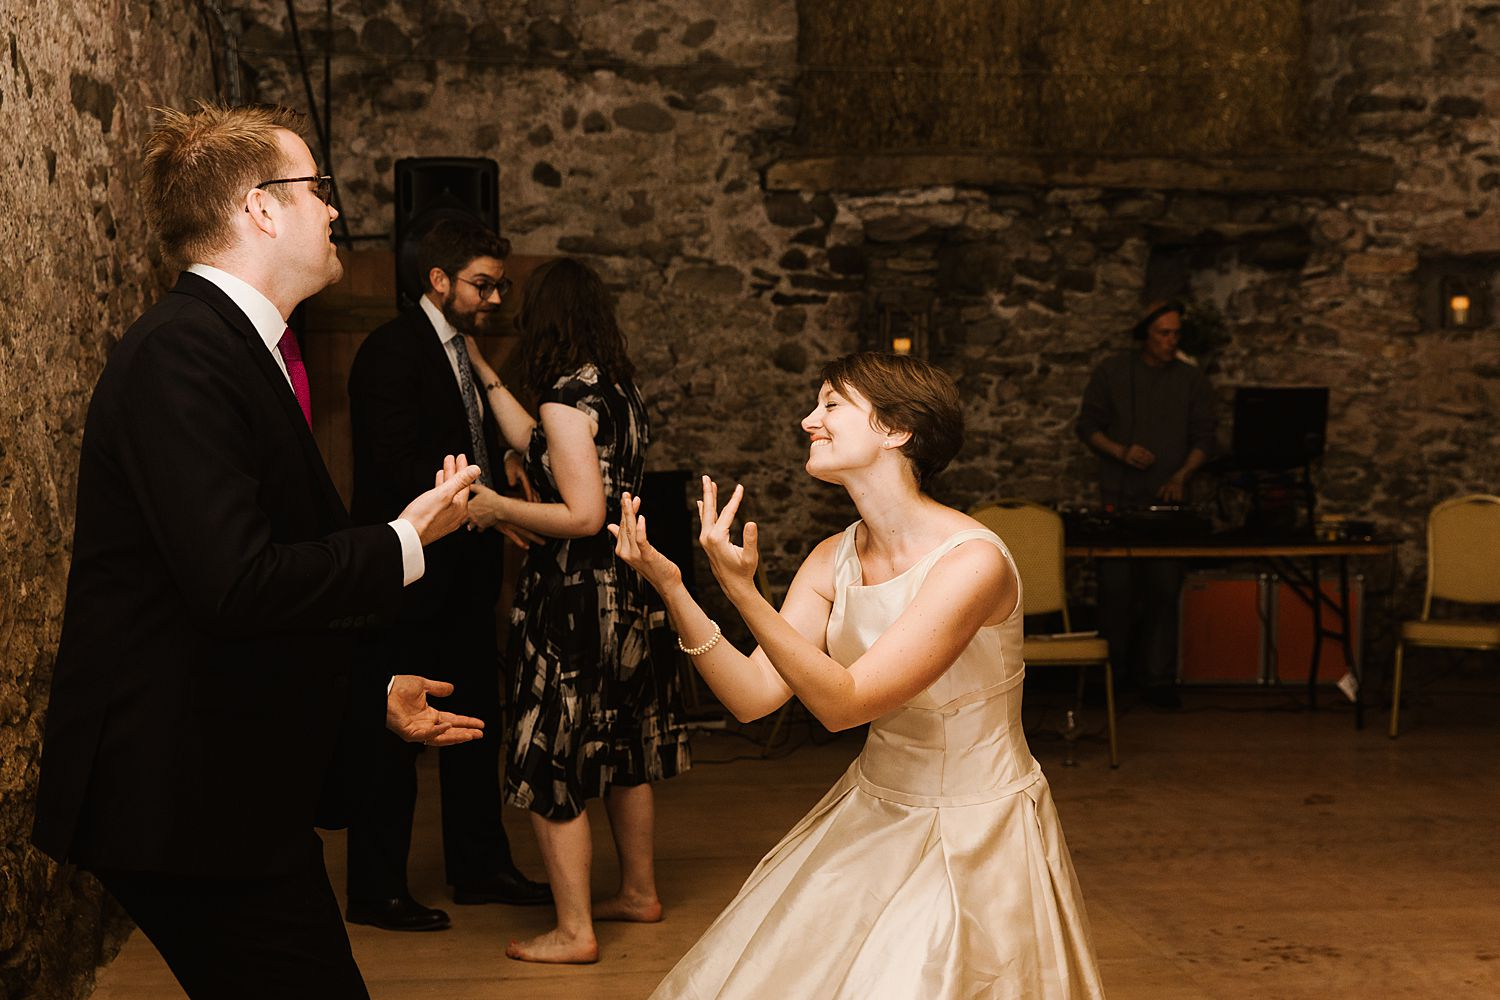 Bride dancing the night away at Park House Barn wedding reception